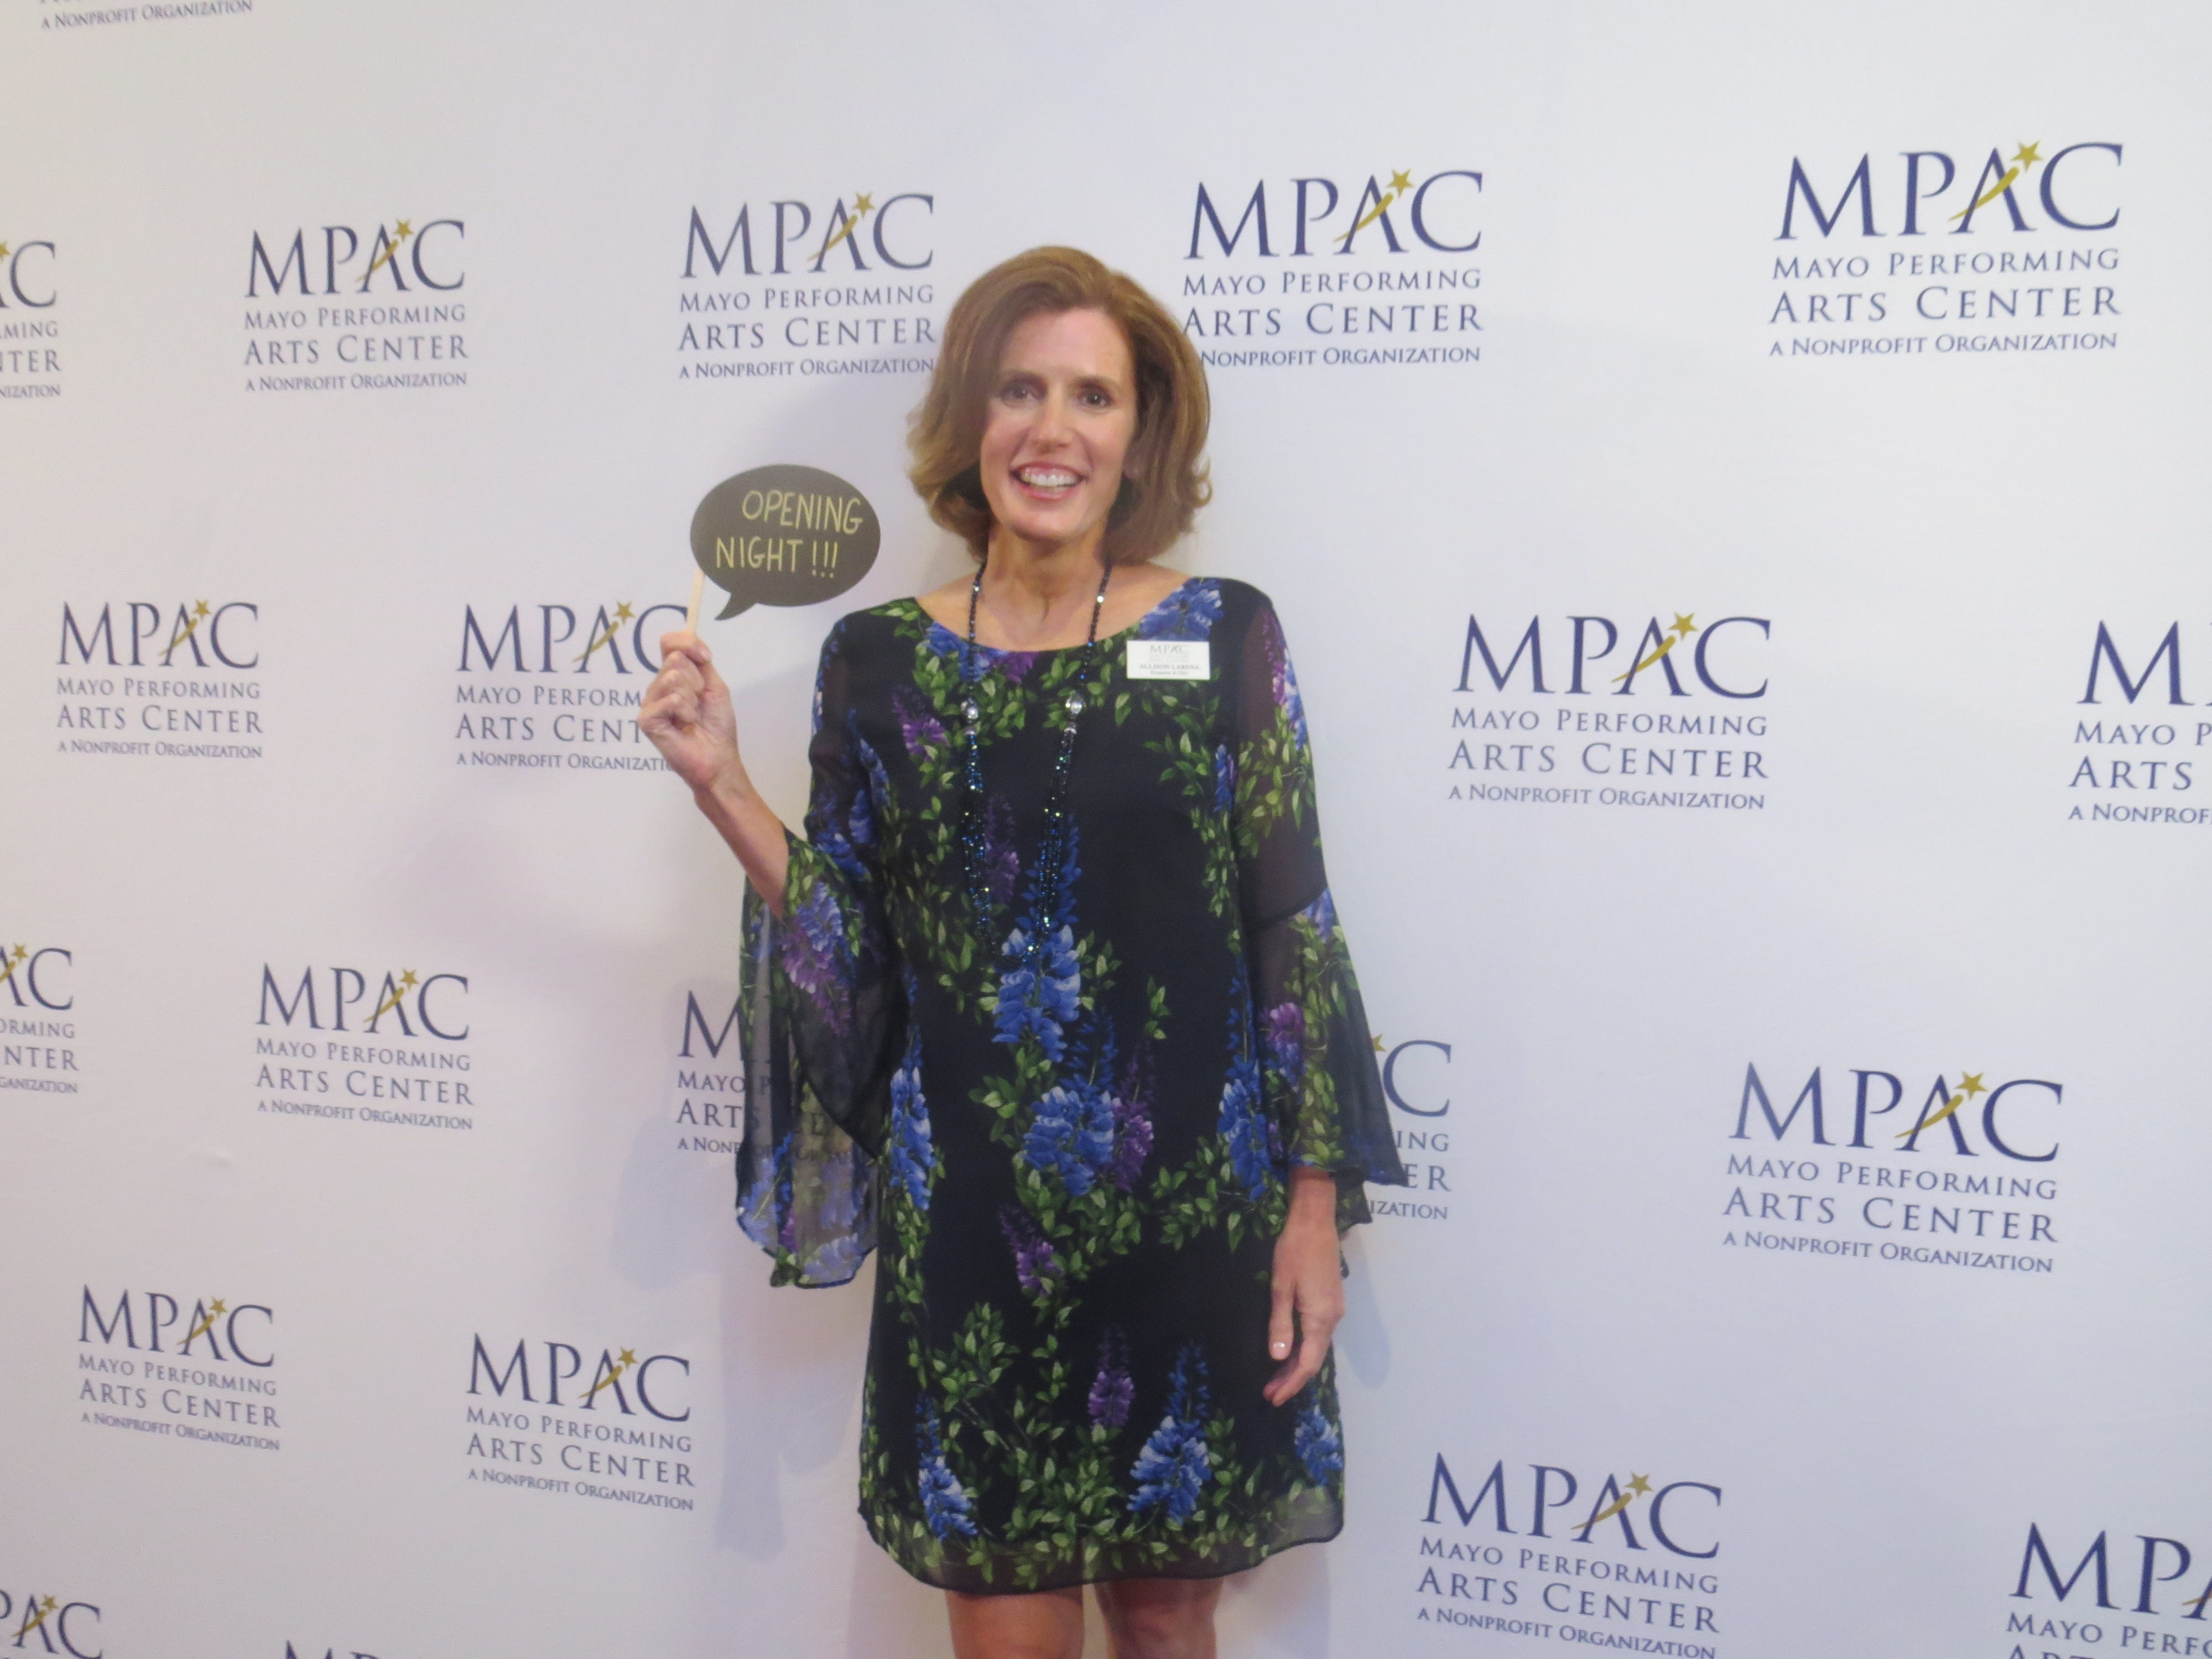 Opening night of the 2018-19 season at the Mayo Performing Arts Center in Morristown: MPAC President-CEO Allison Larena.